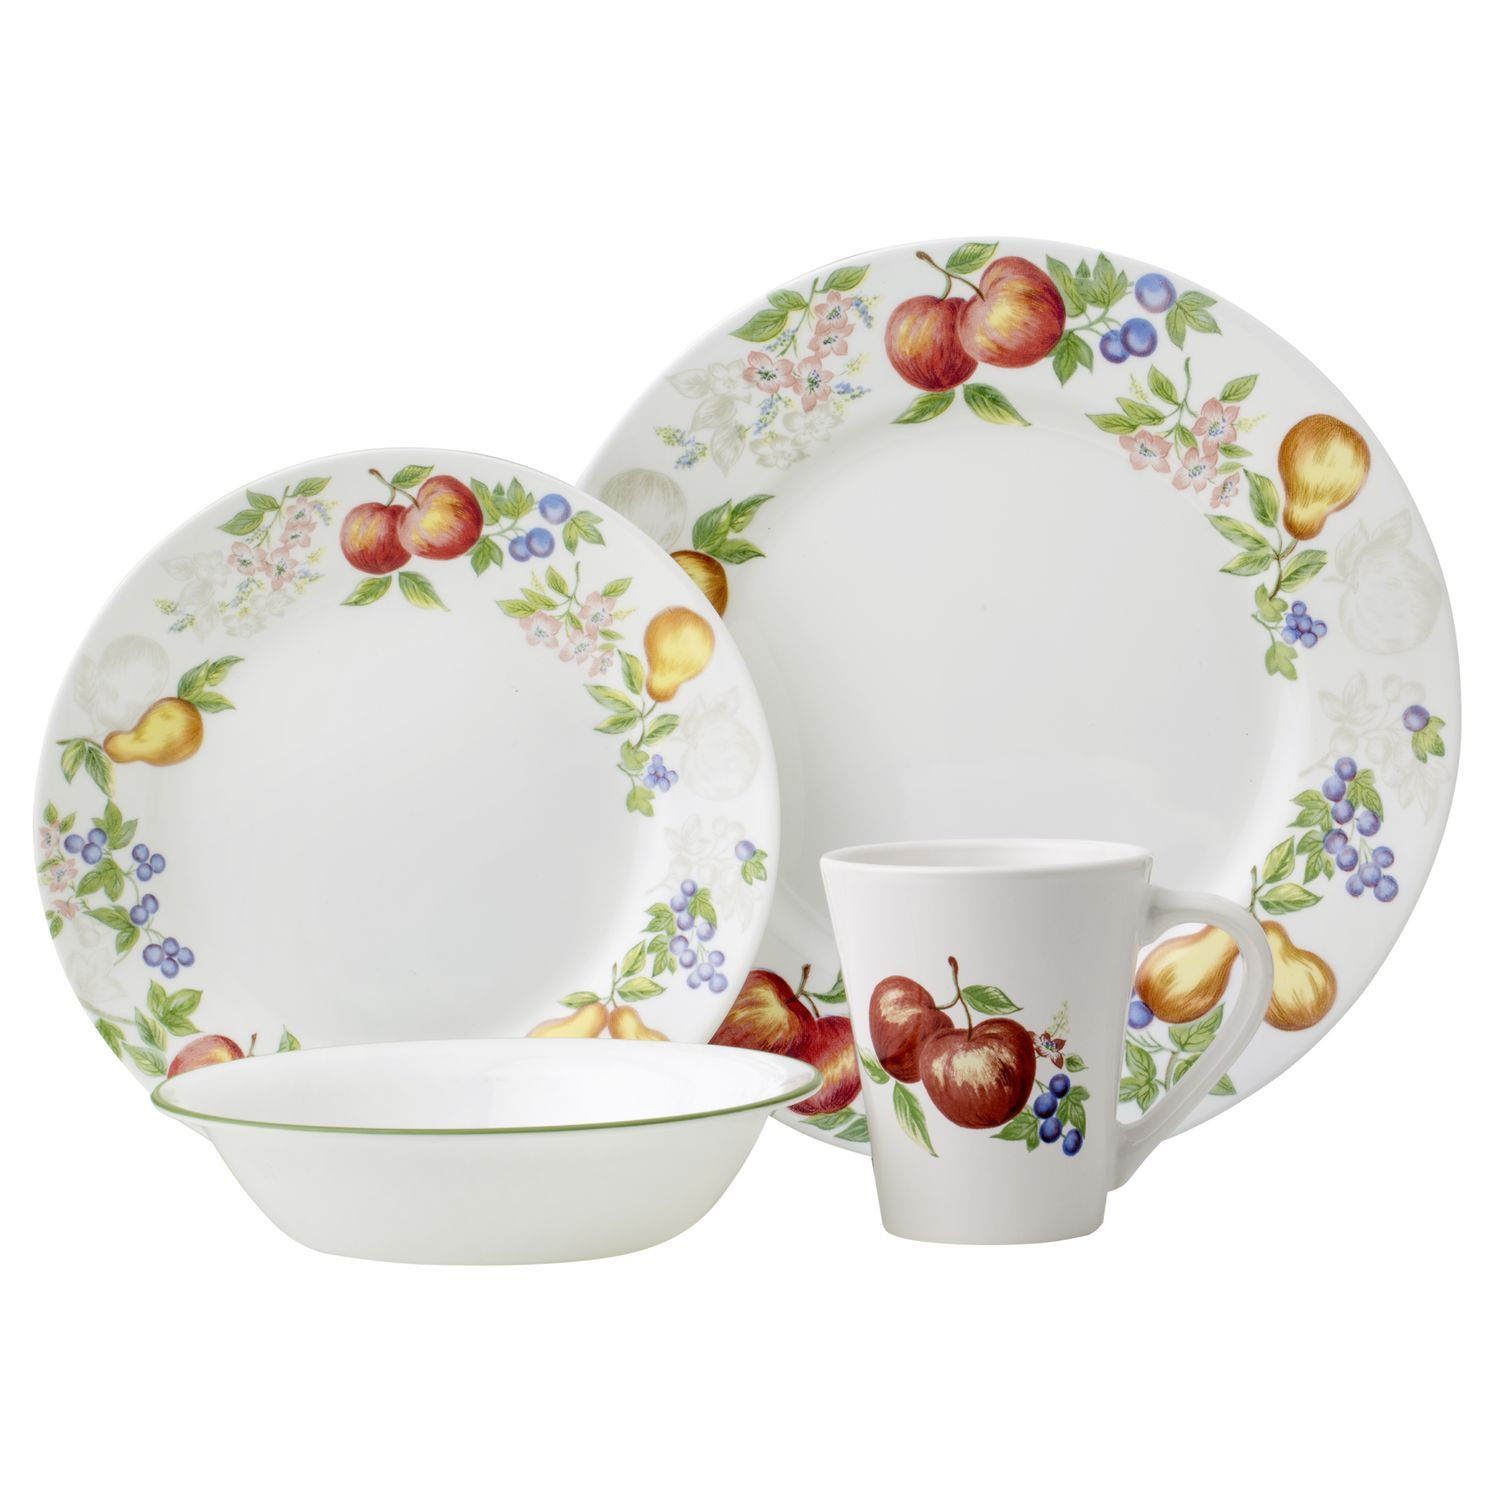 cottages corelle dishes k and customer dinner plates more cottage listings plate reviews country